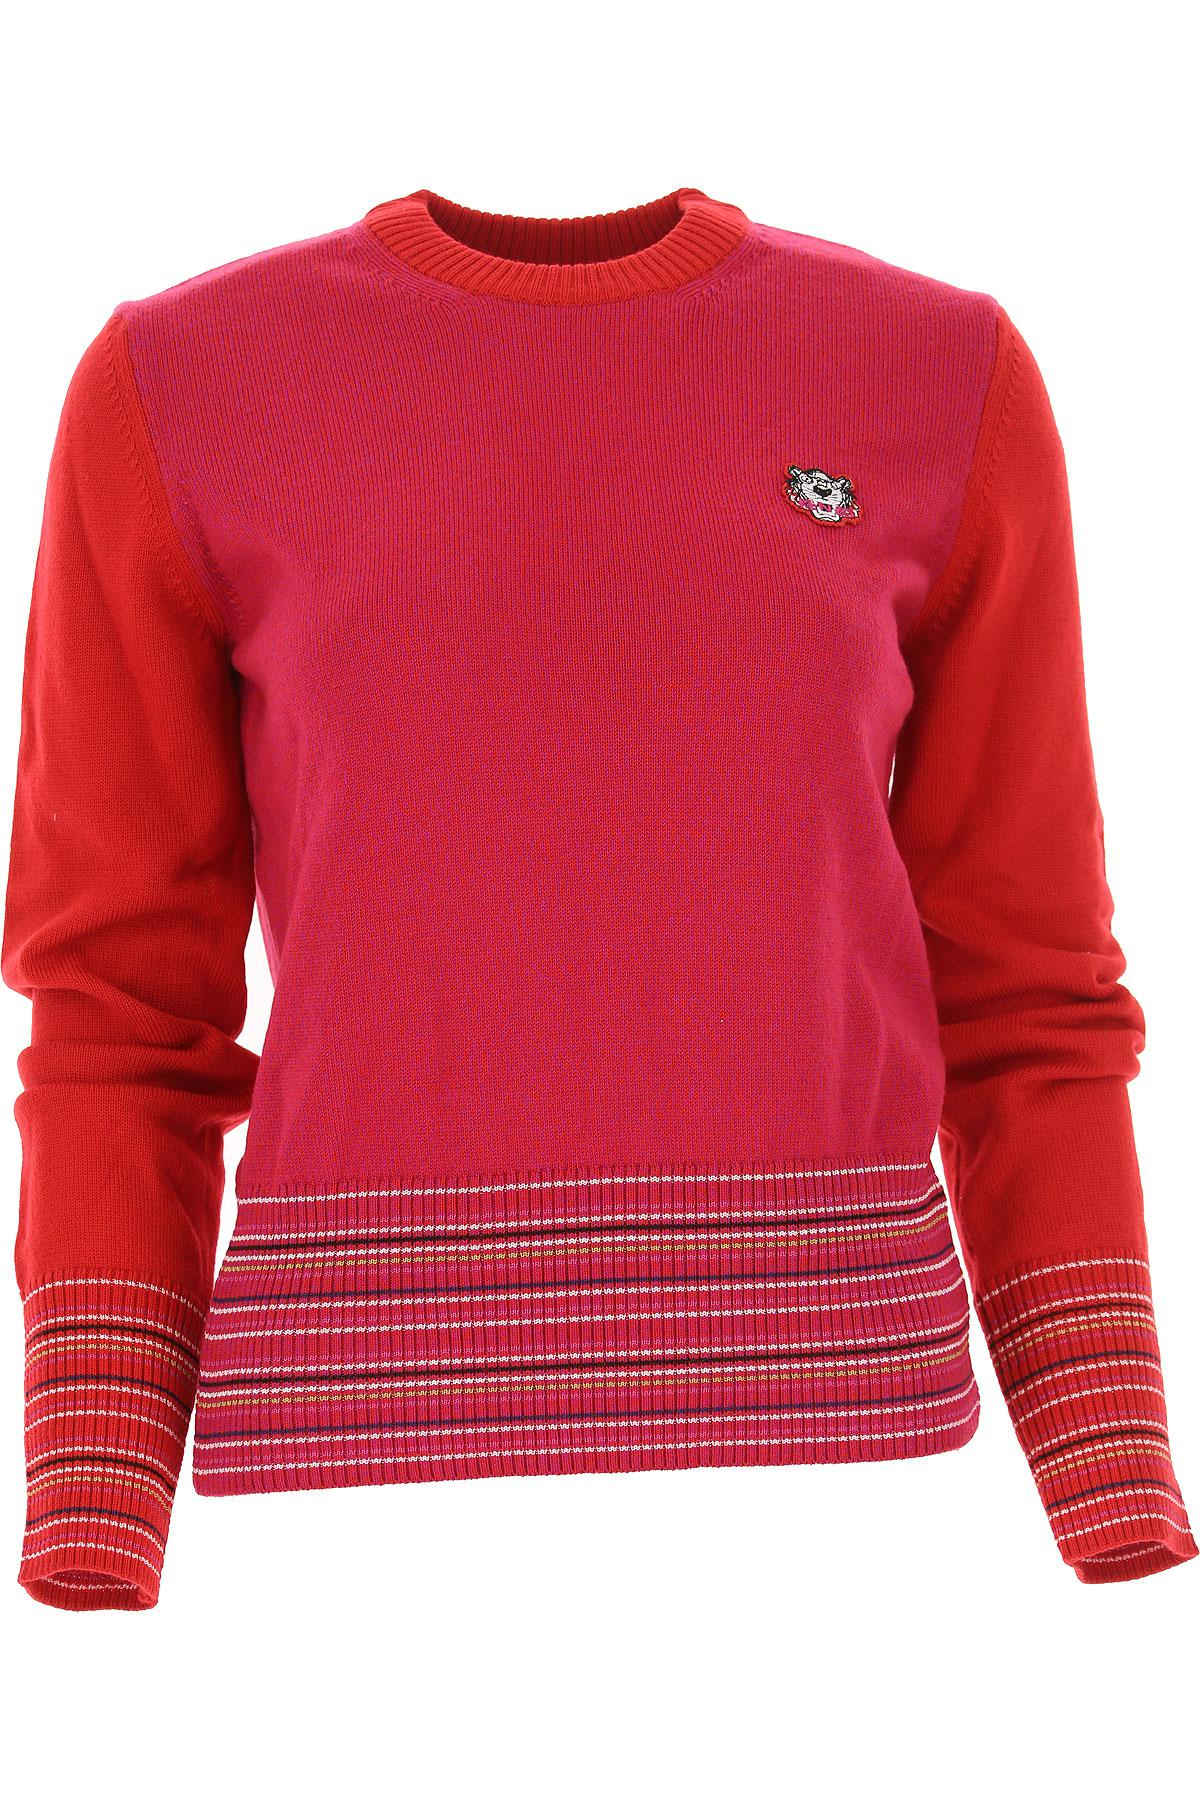 d9a32110 Kenzo Sweater For Women Jumper in Red - Lyst